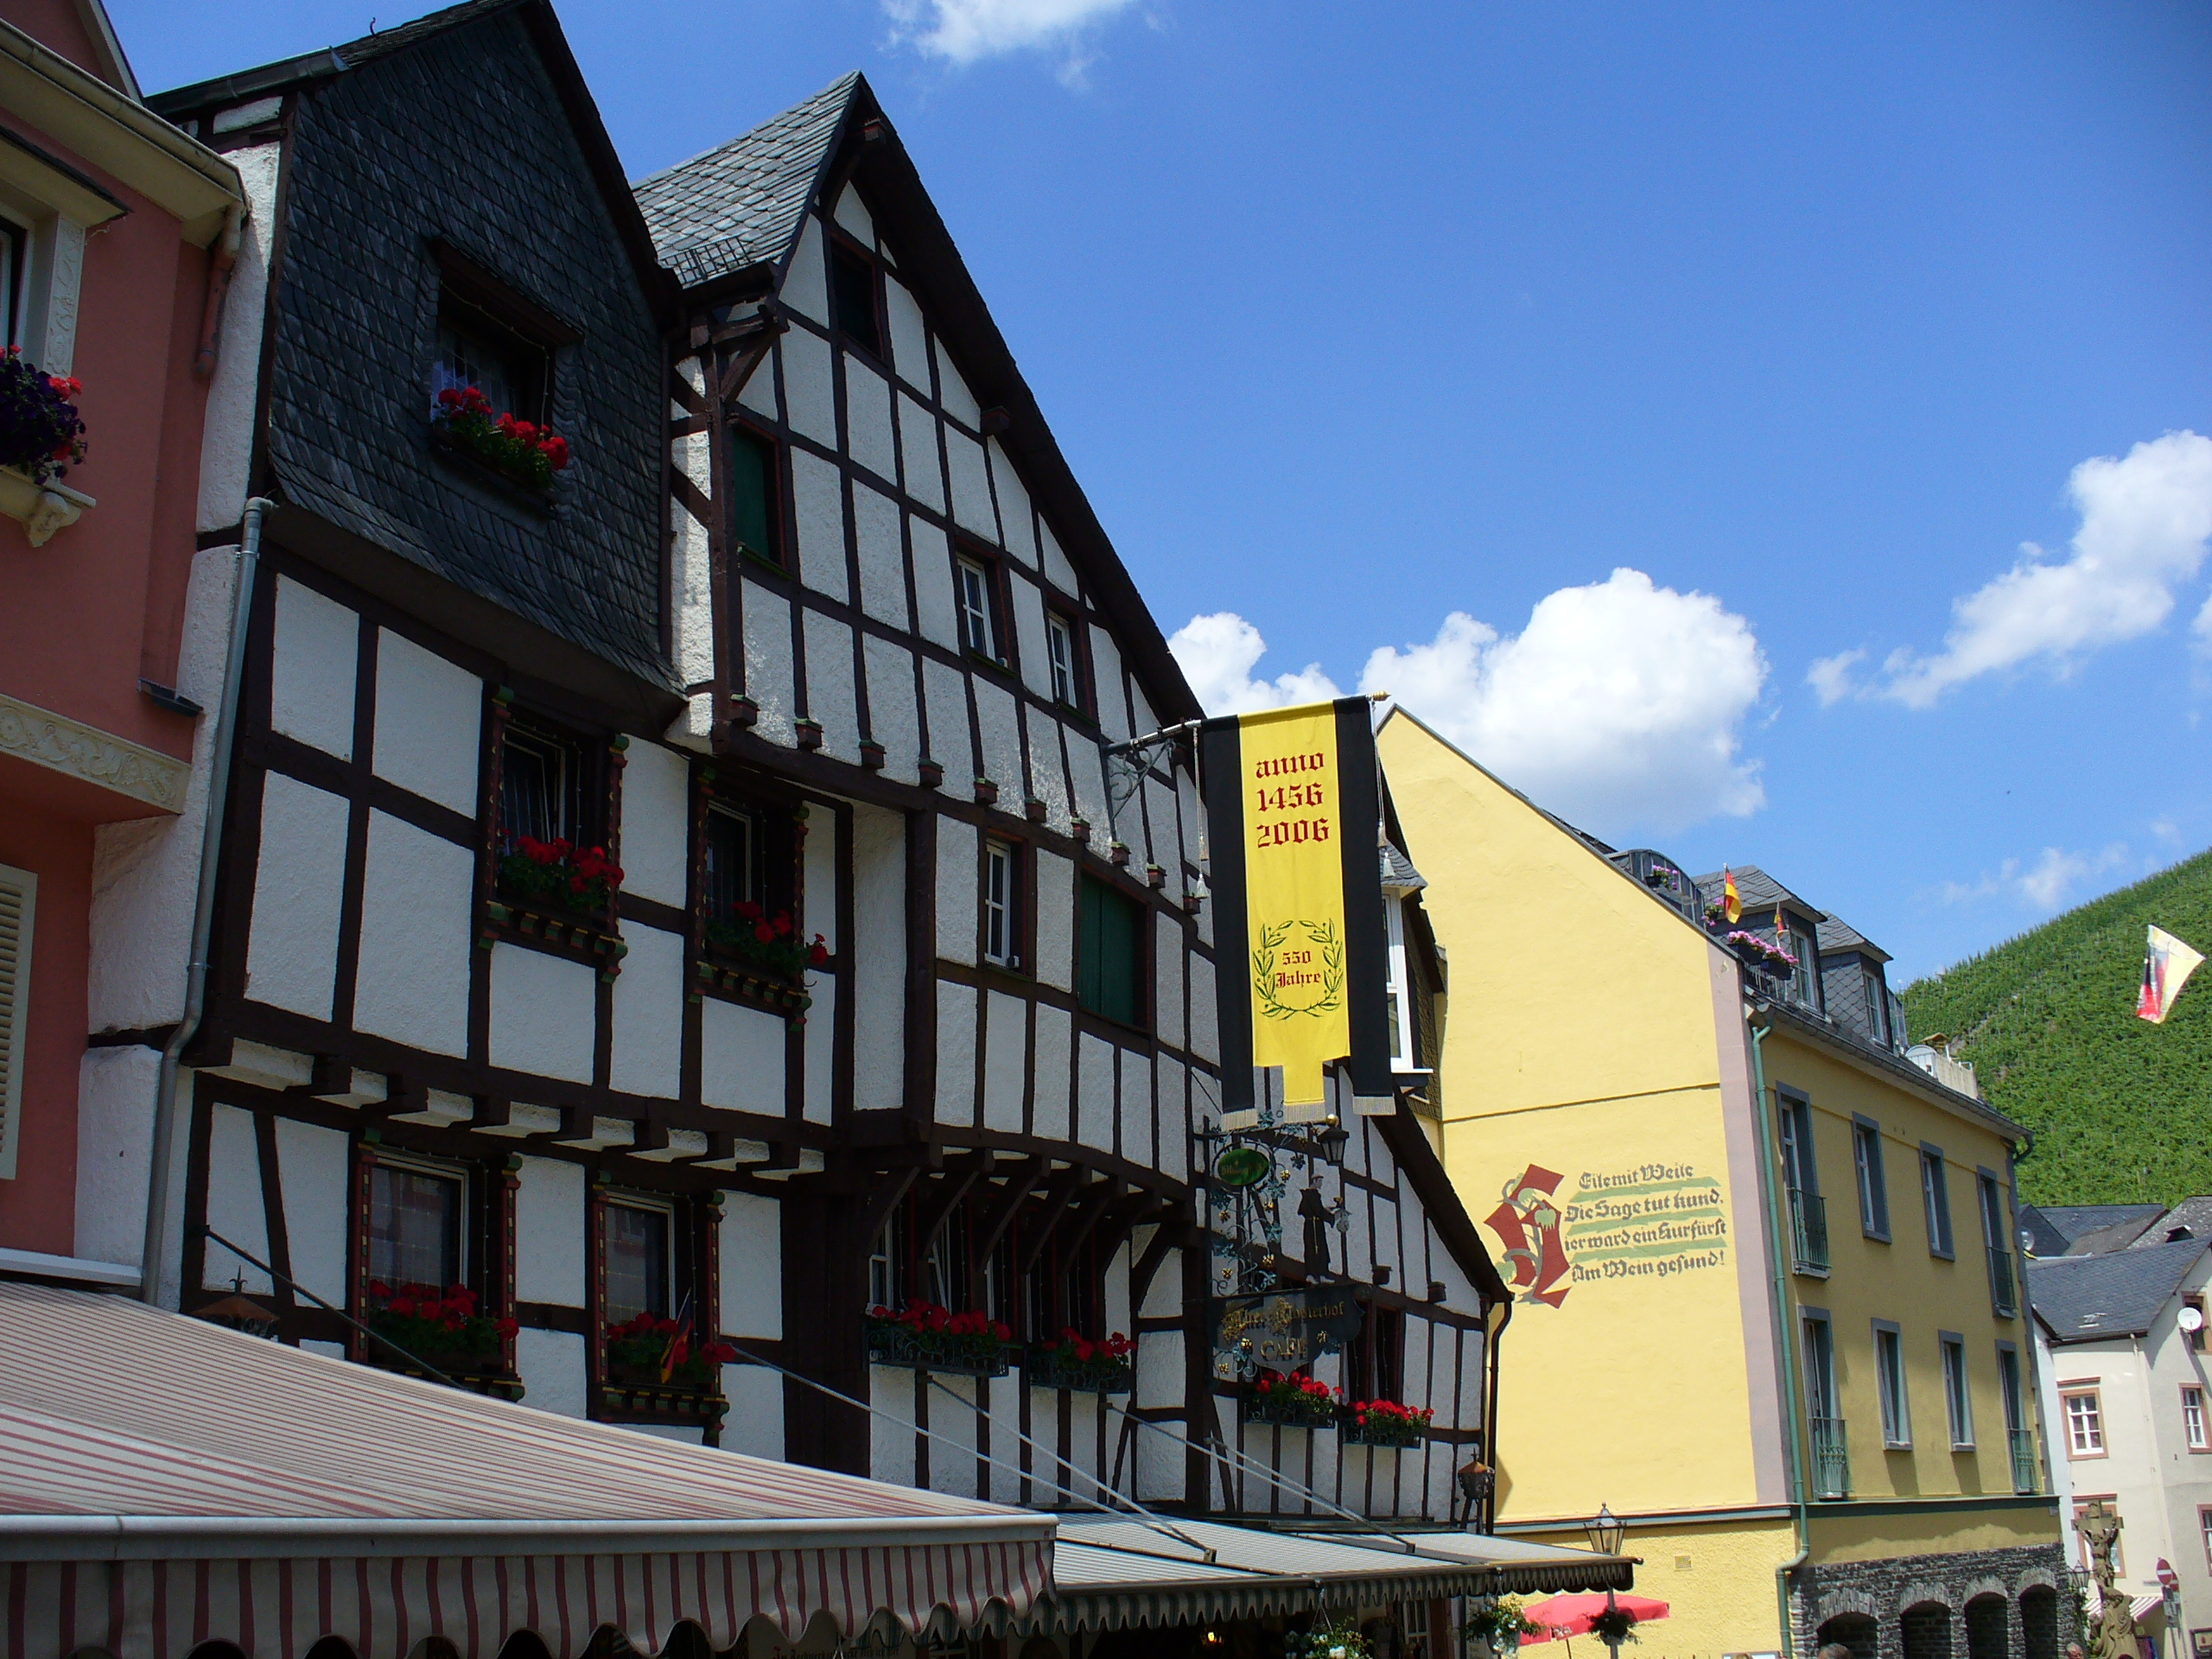 A warped house built in 1497 in Germany